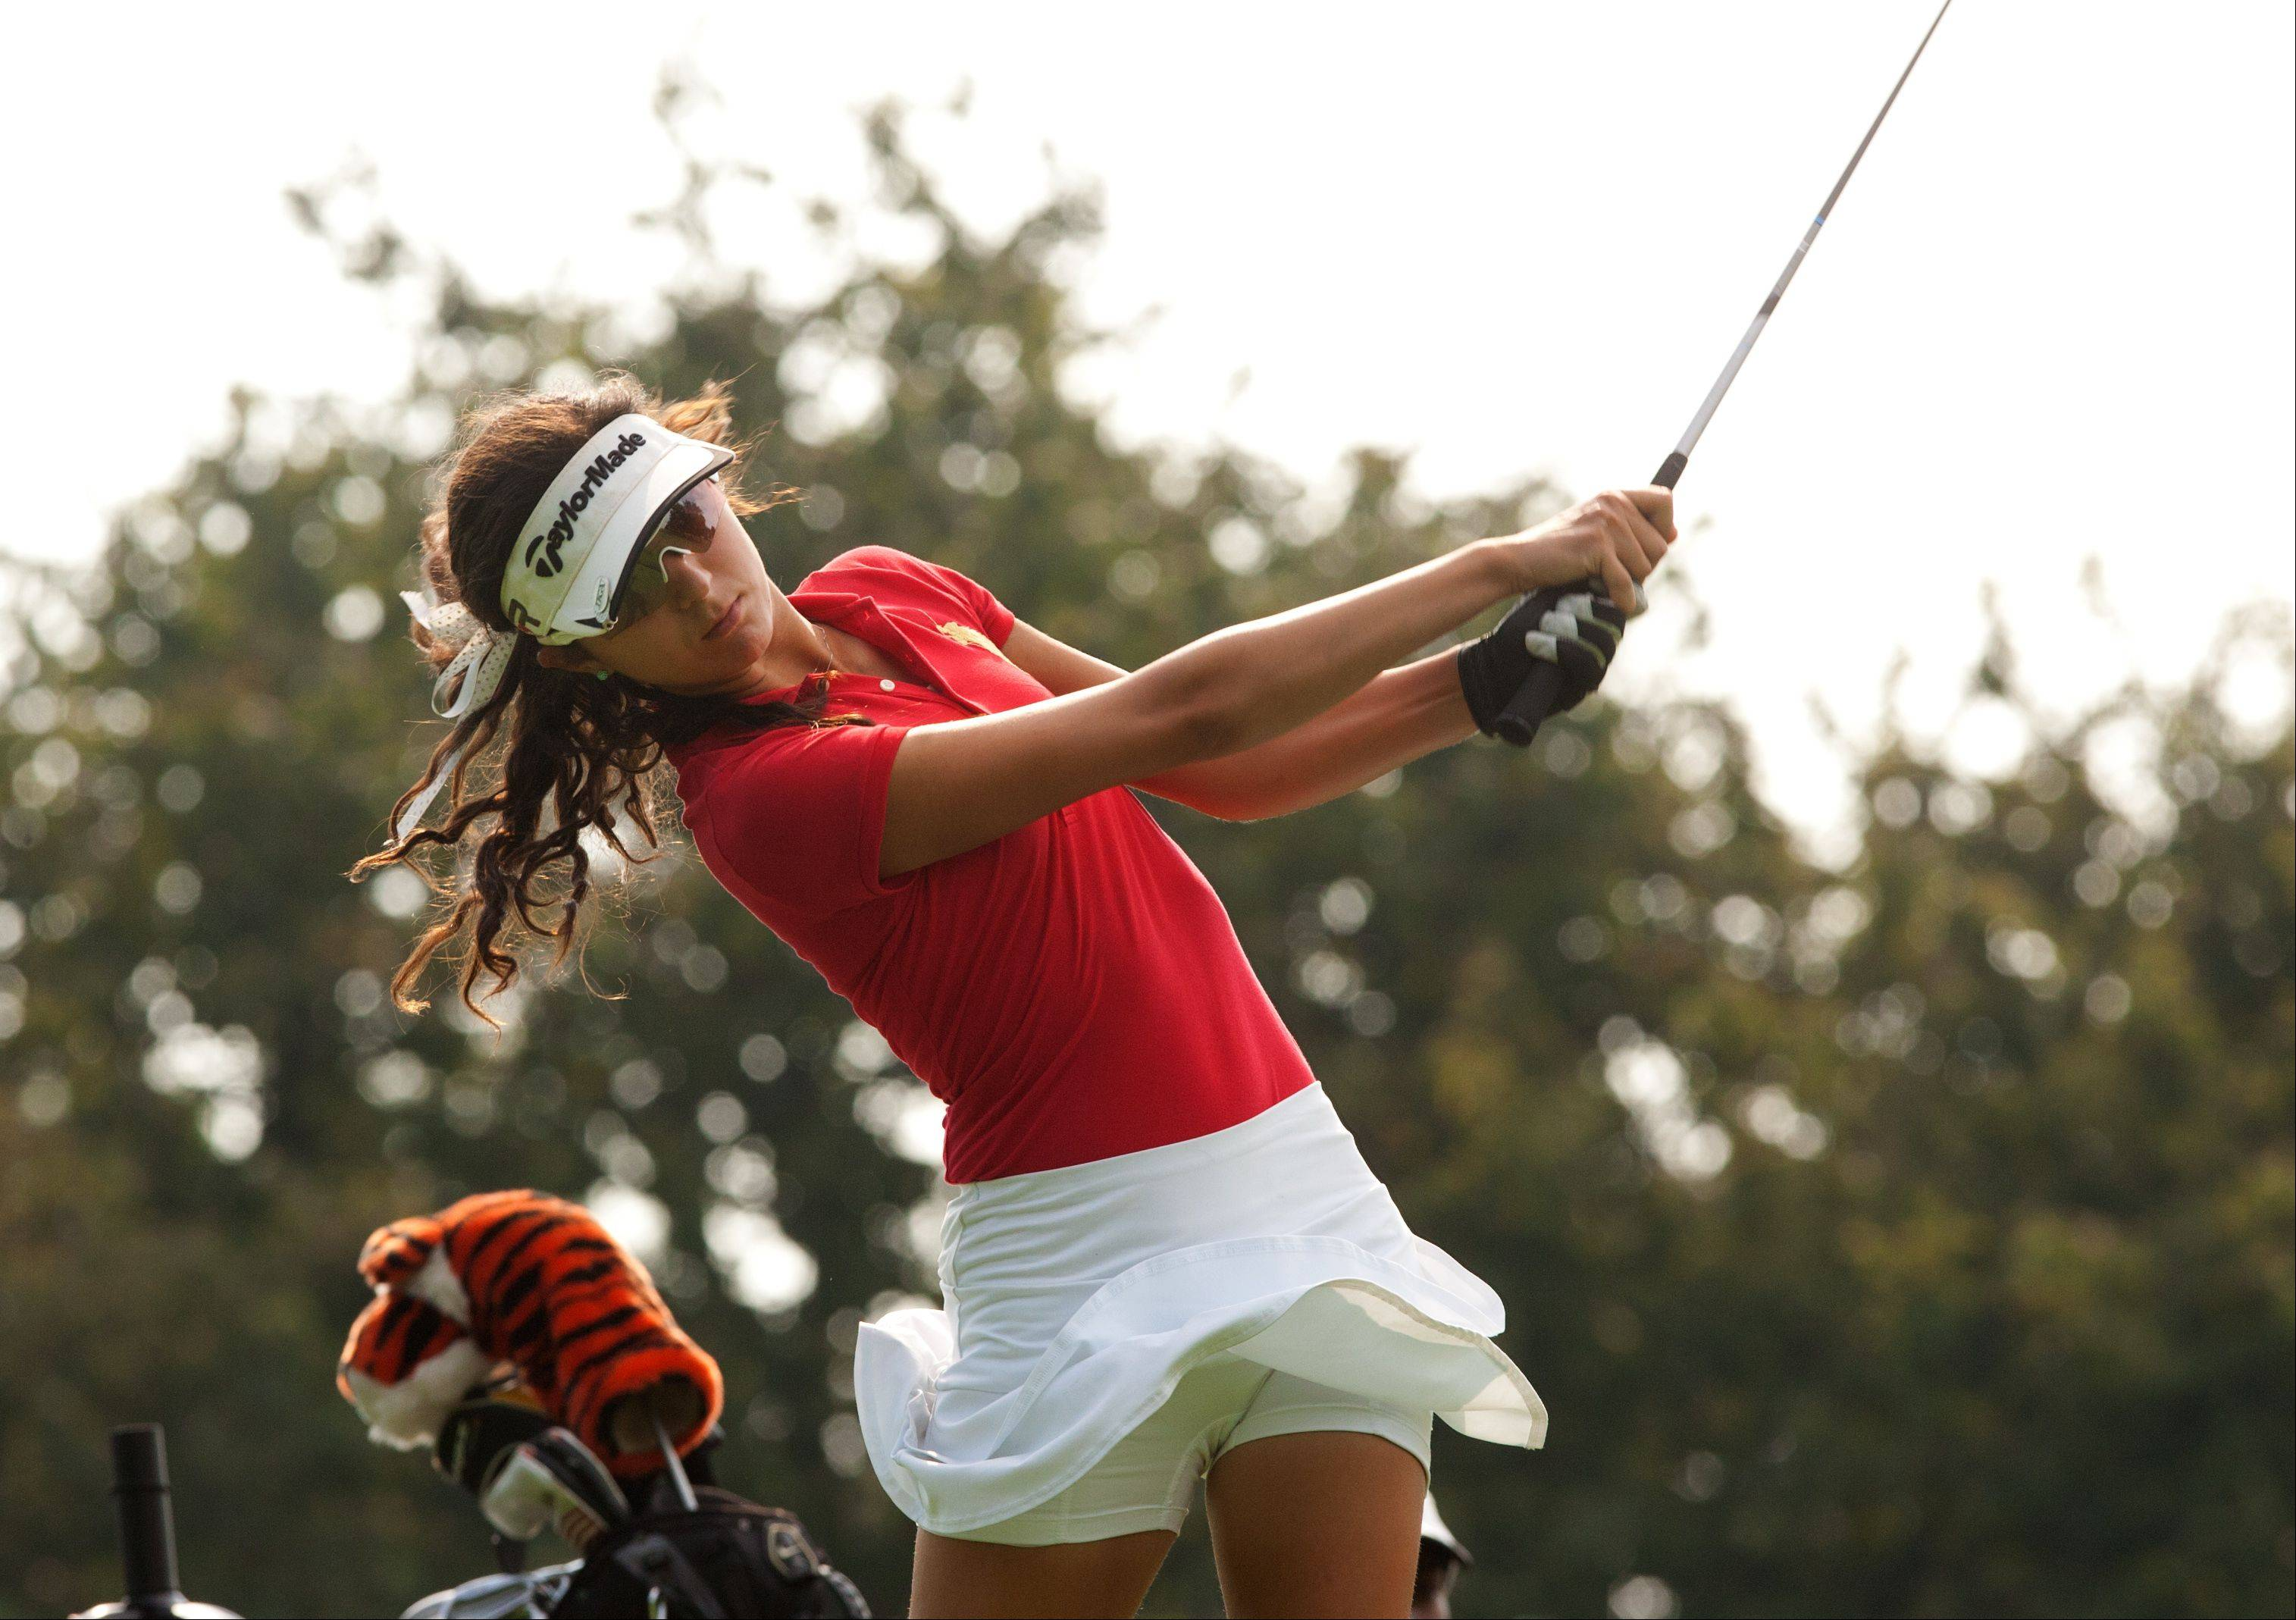 Isablella Abbdula of Benet tees off during the 2013 Vern McGonagle Memorial boys and girls golf invitational at the Naperville Country Club.